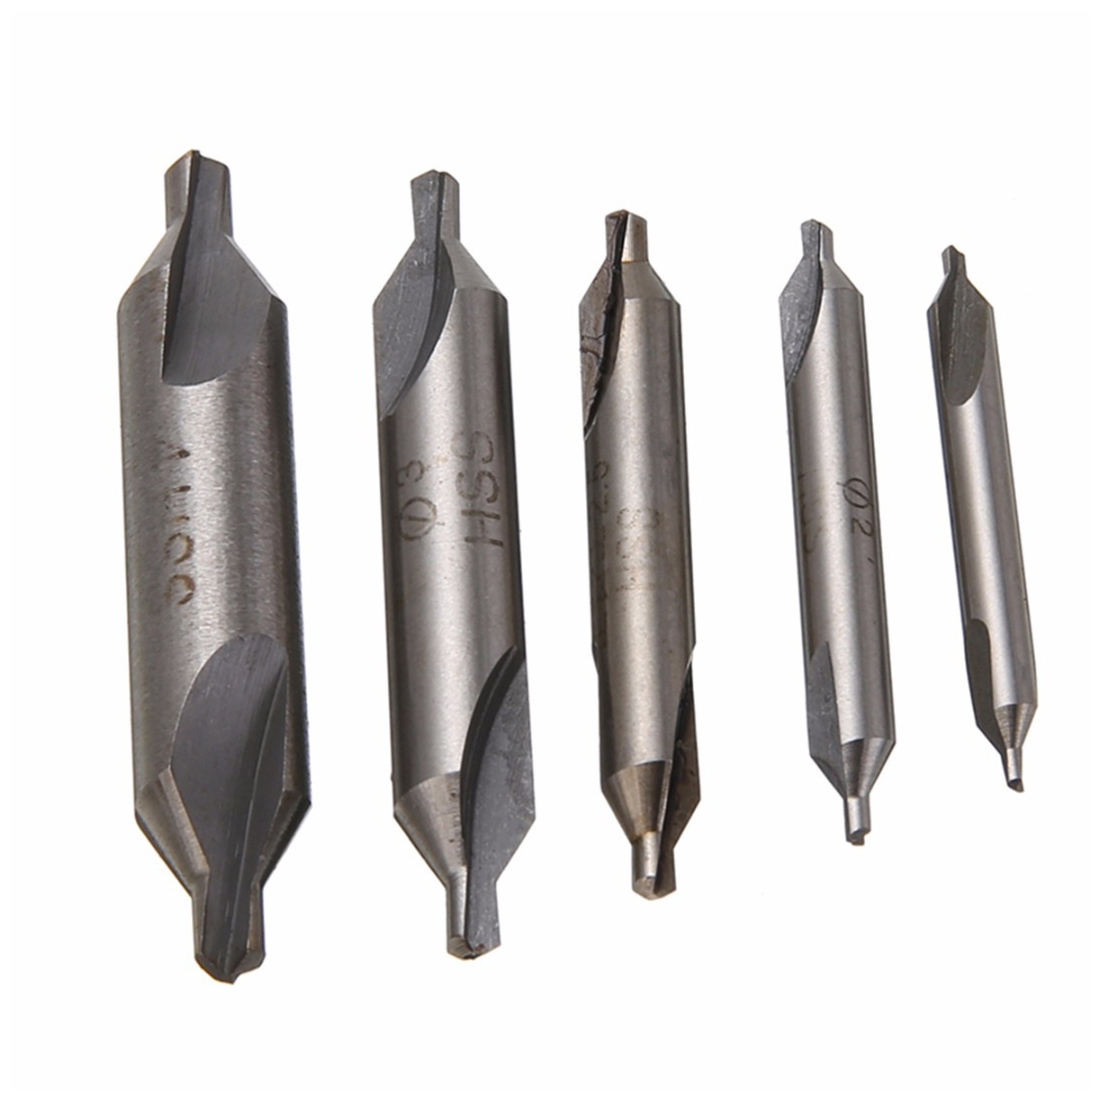 1mm /2mm /3mm /5mm HSS Combined Center Drills Bits 60 Degree Countersink Drill Set For Power Tools